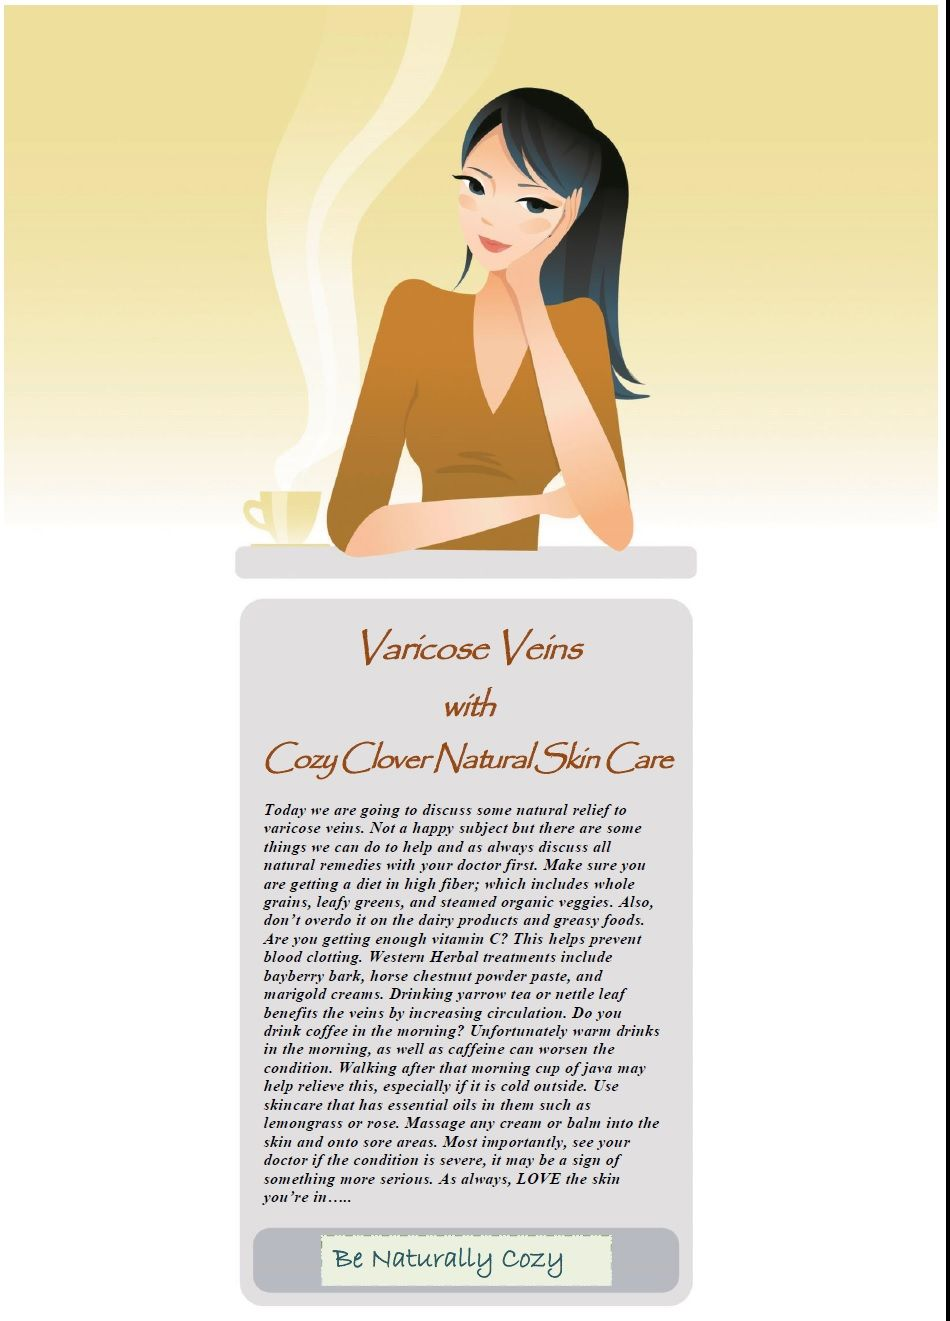 Natural skin health for varicose veins, by Cozy Clover